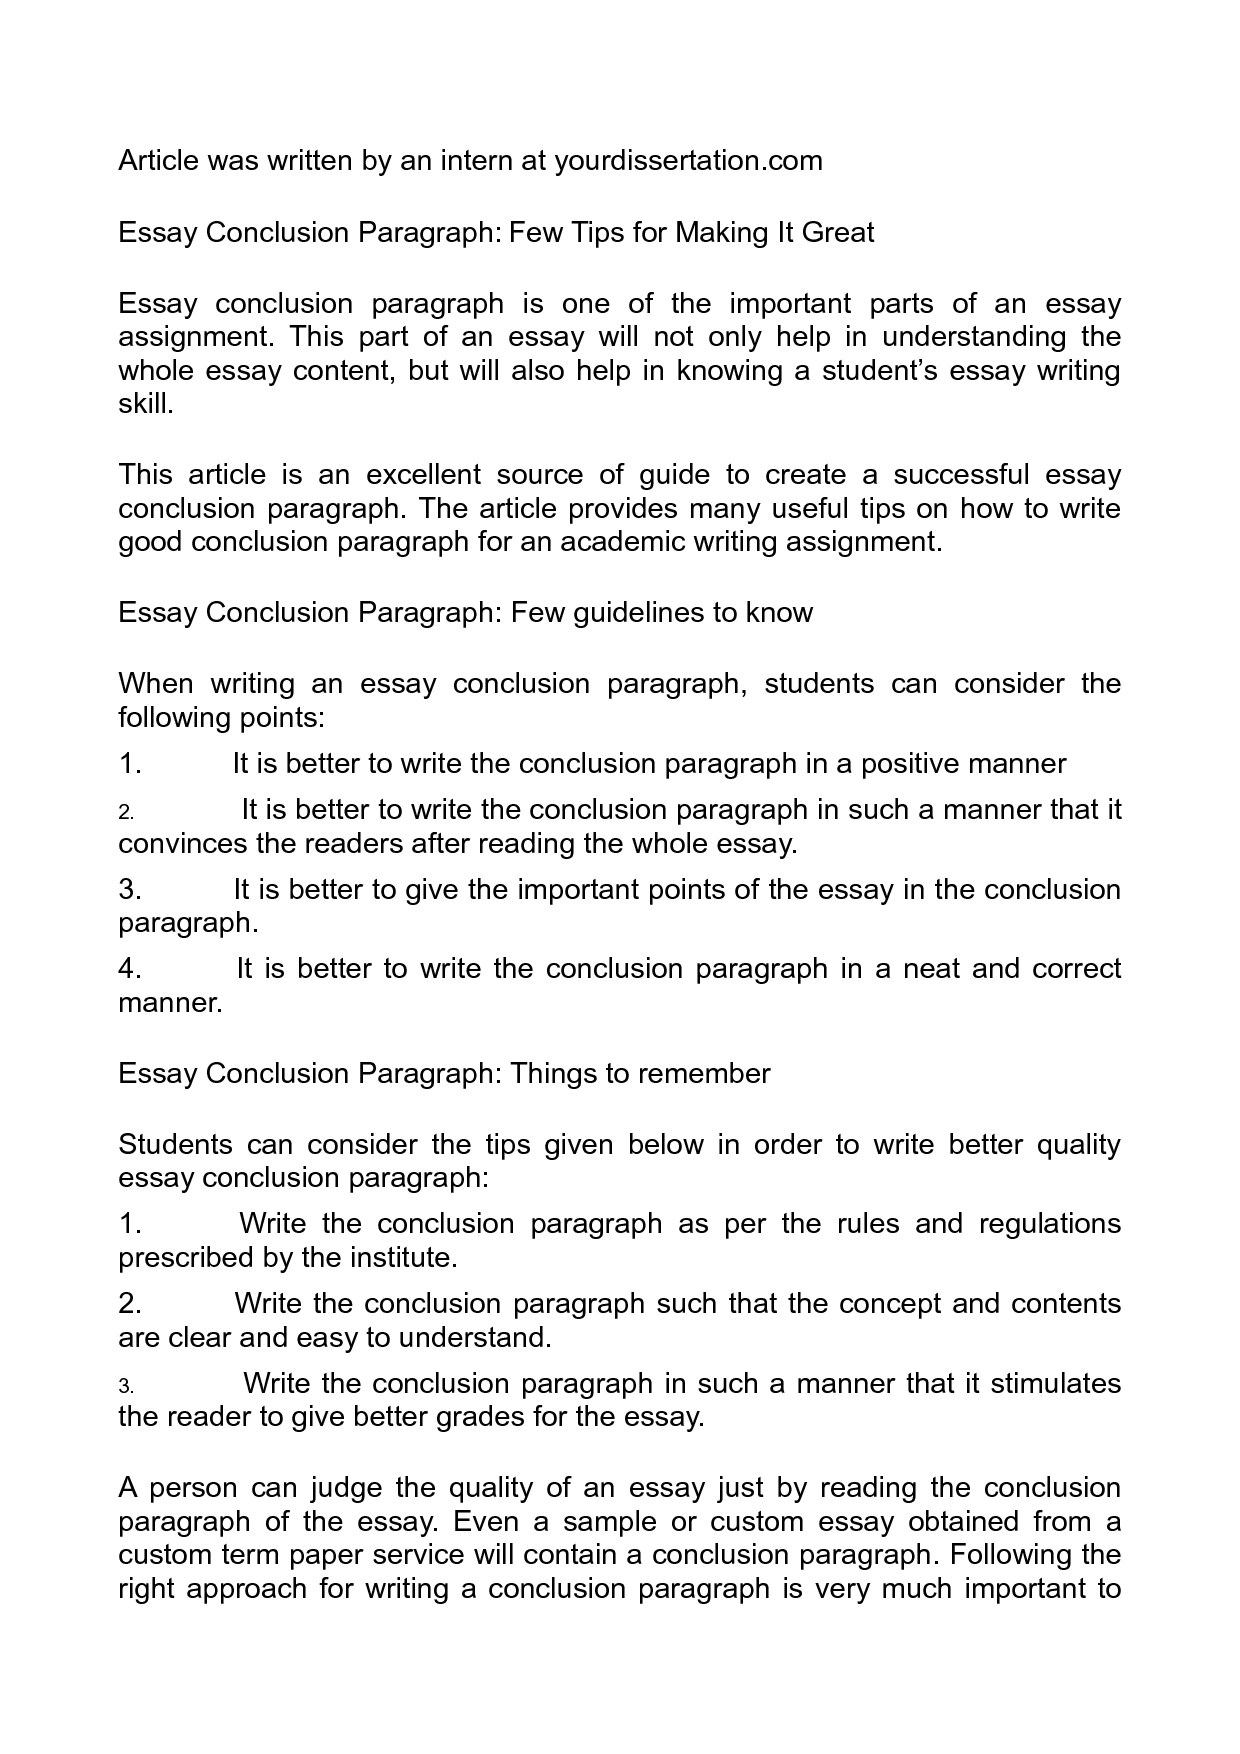 essay conclution Concluding paragraphs are used to tie up an essay in a cohesive and concise summary of the thesis and key points essay conclusion tips for college students.